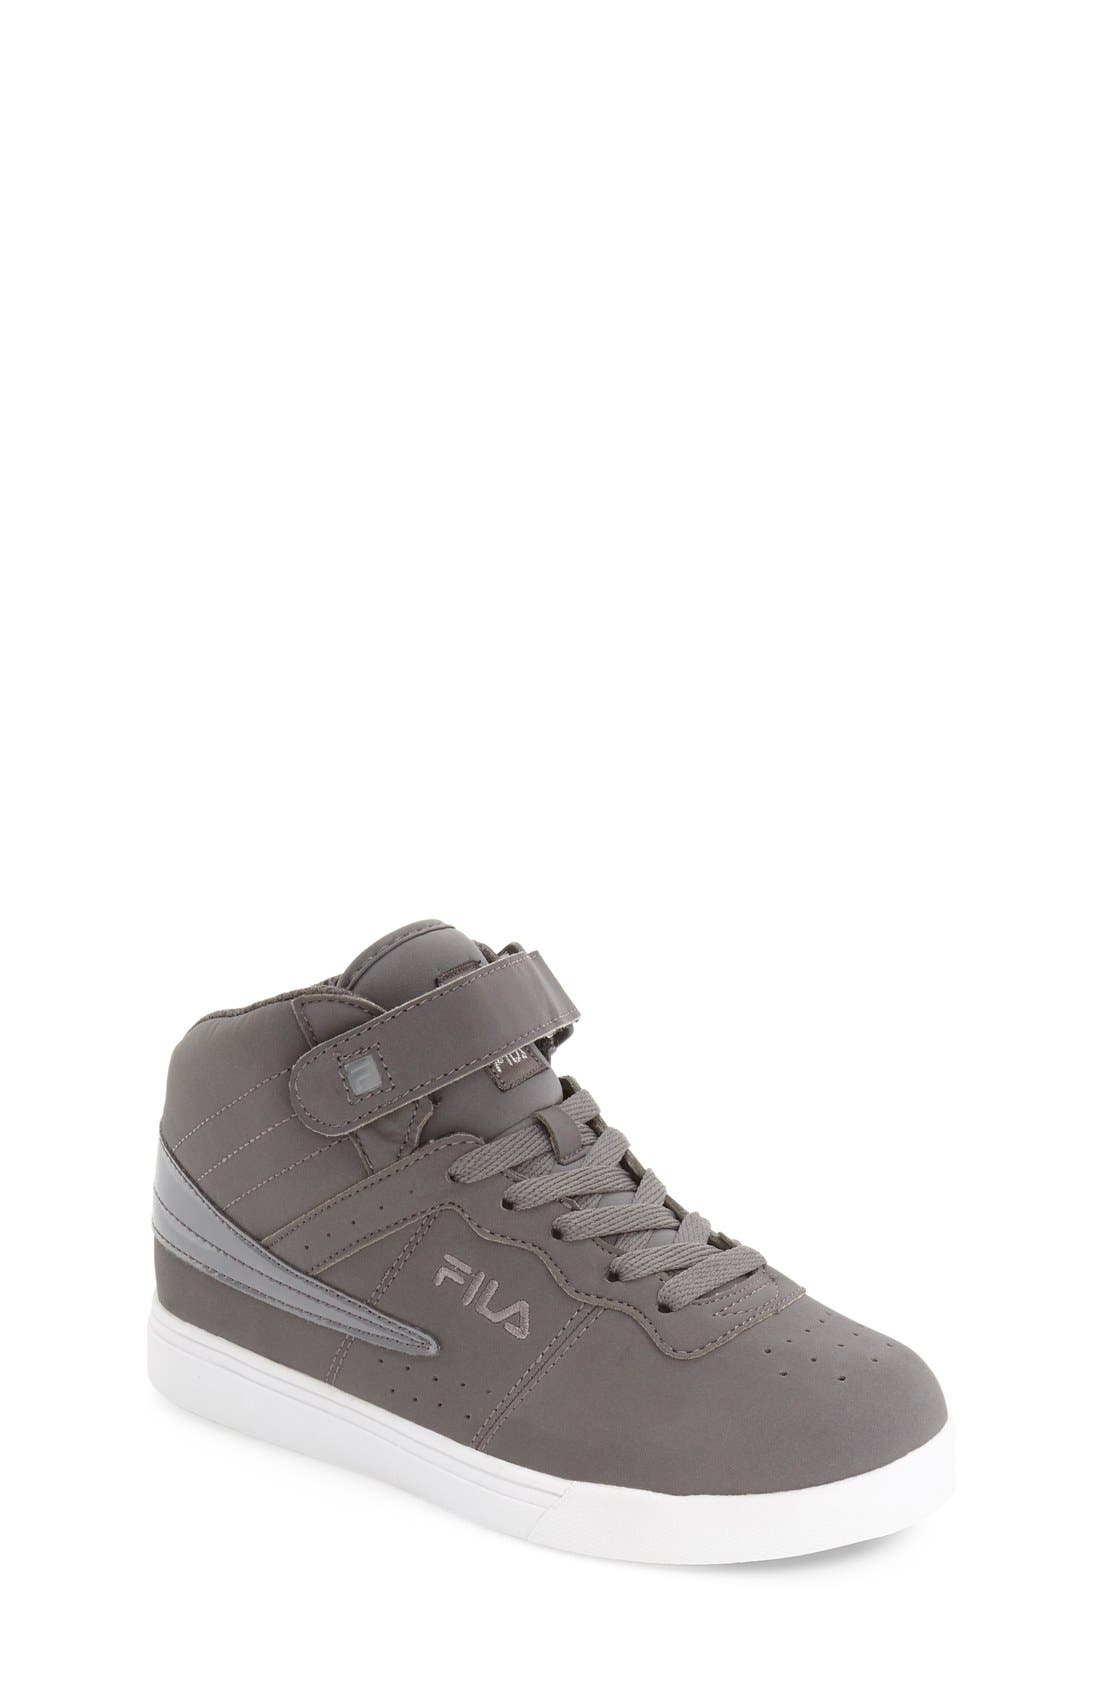 Vulc 13 High Top Sneaker,                             Main thumbnail 1, color,                             Pewter/ White